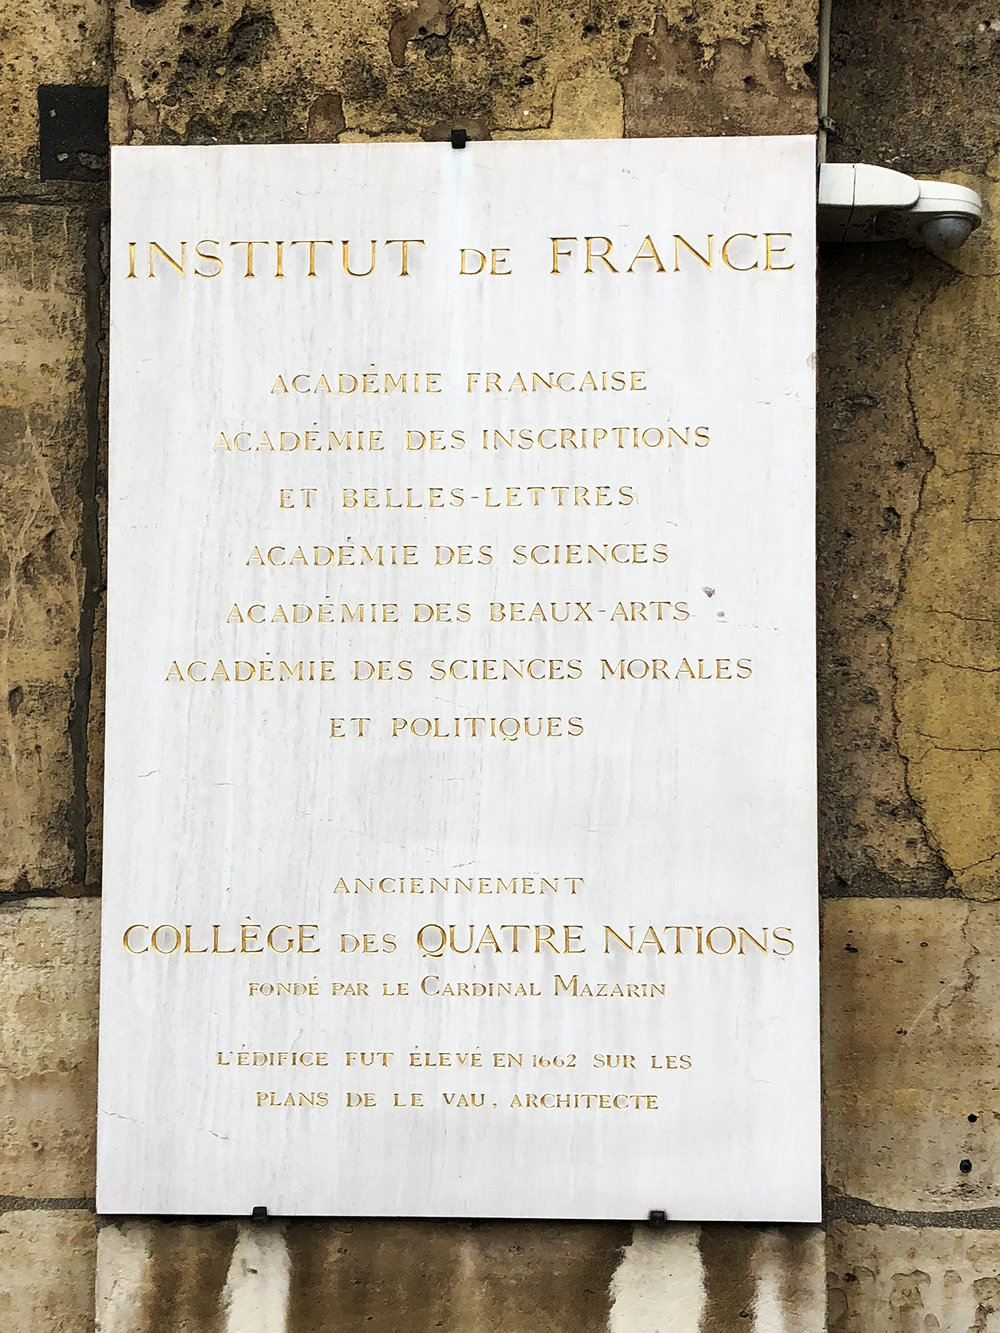 Several Académies at l'Institut de France